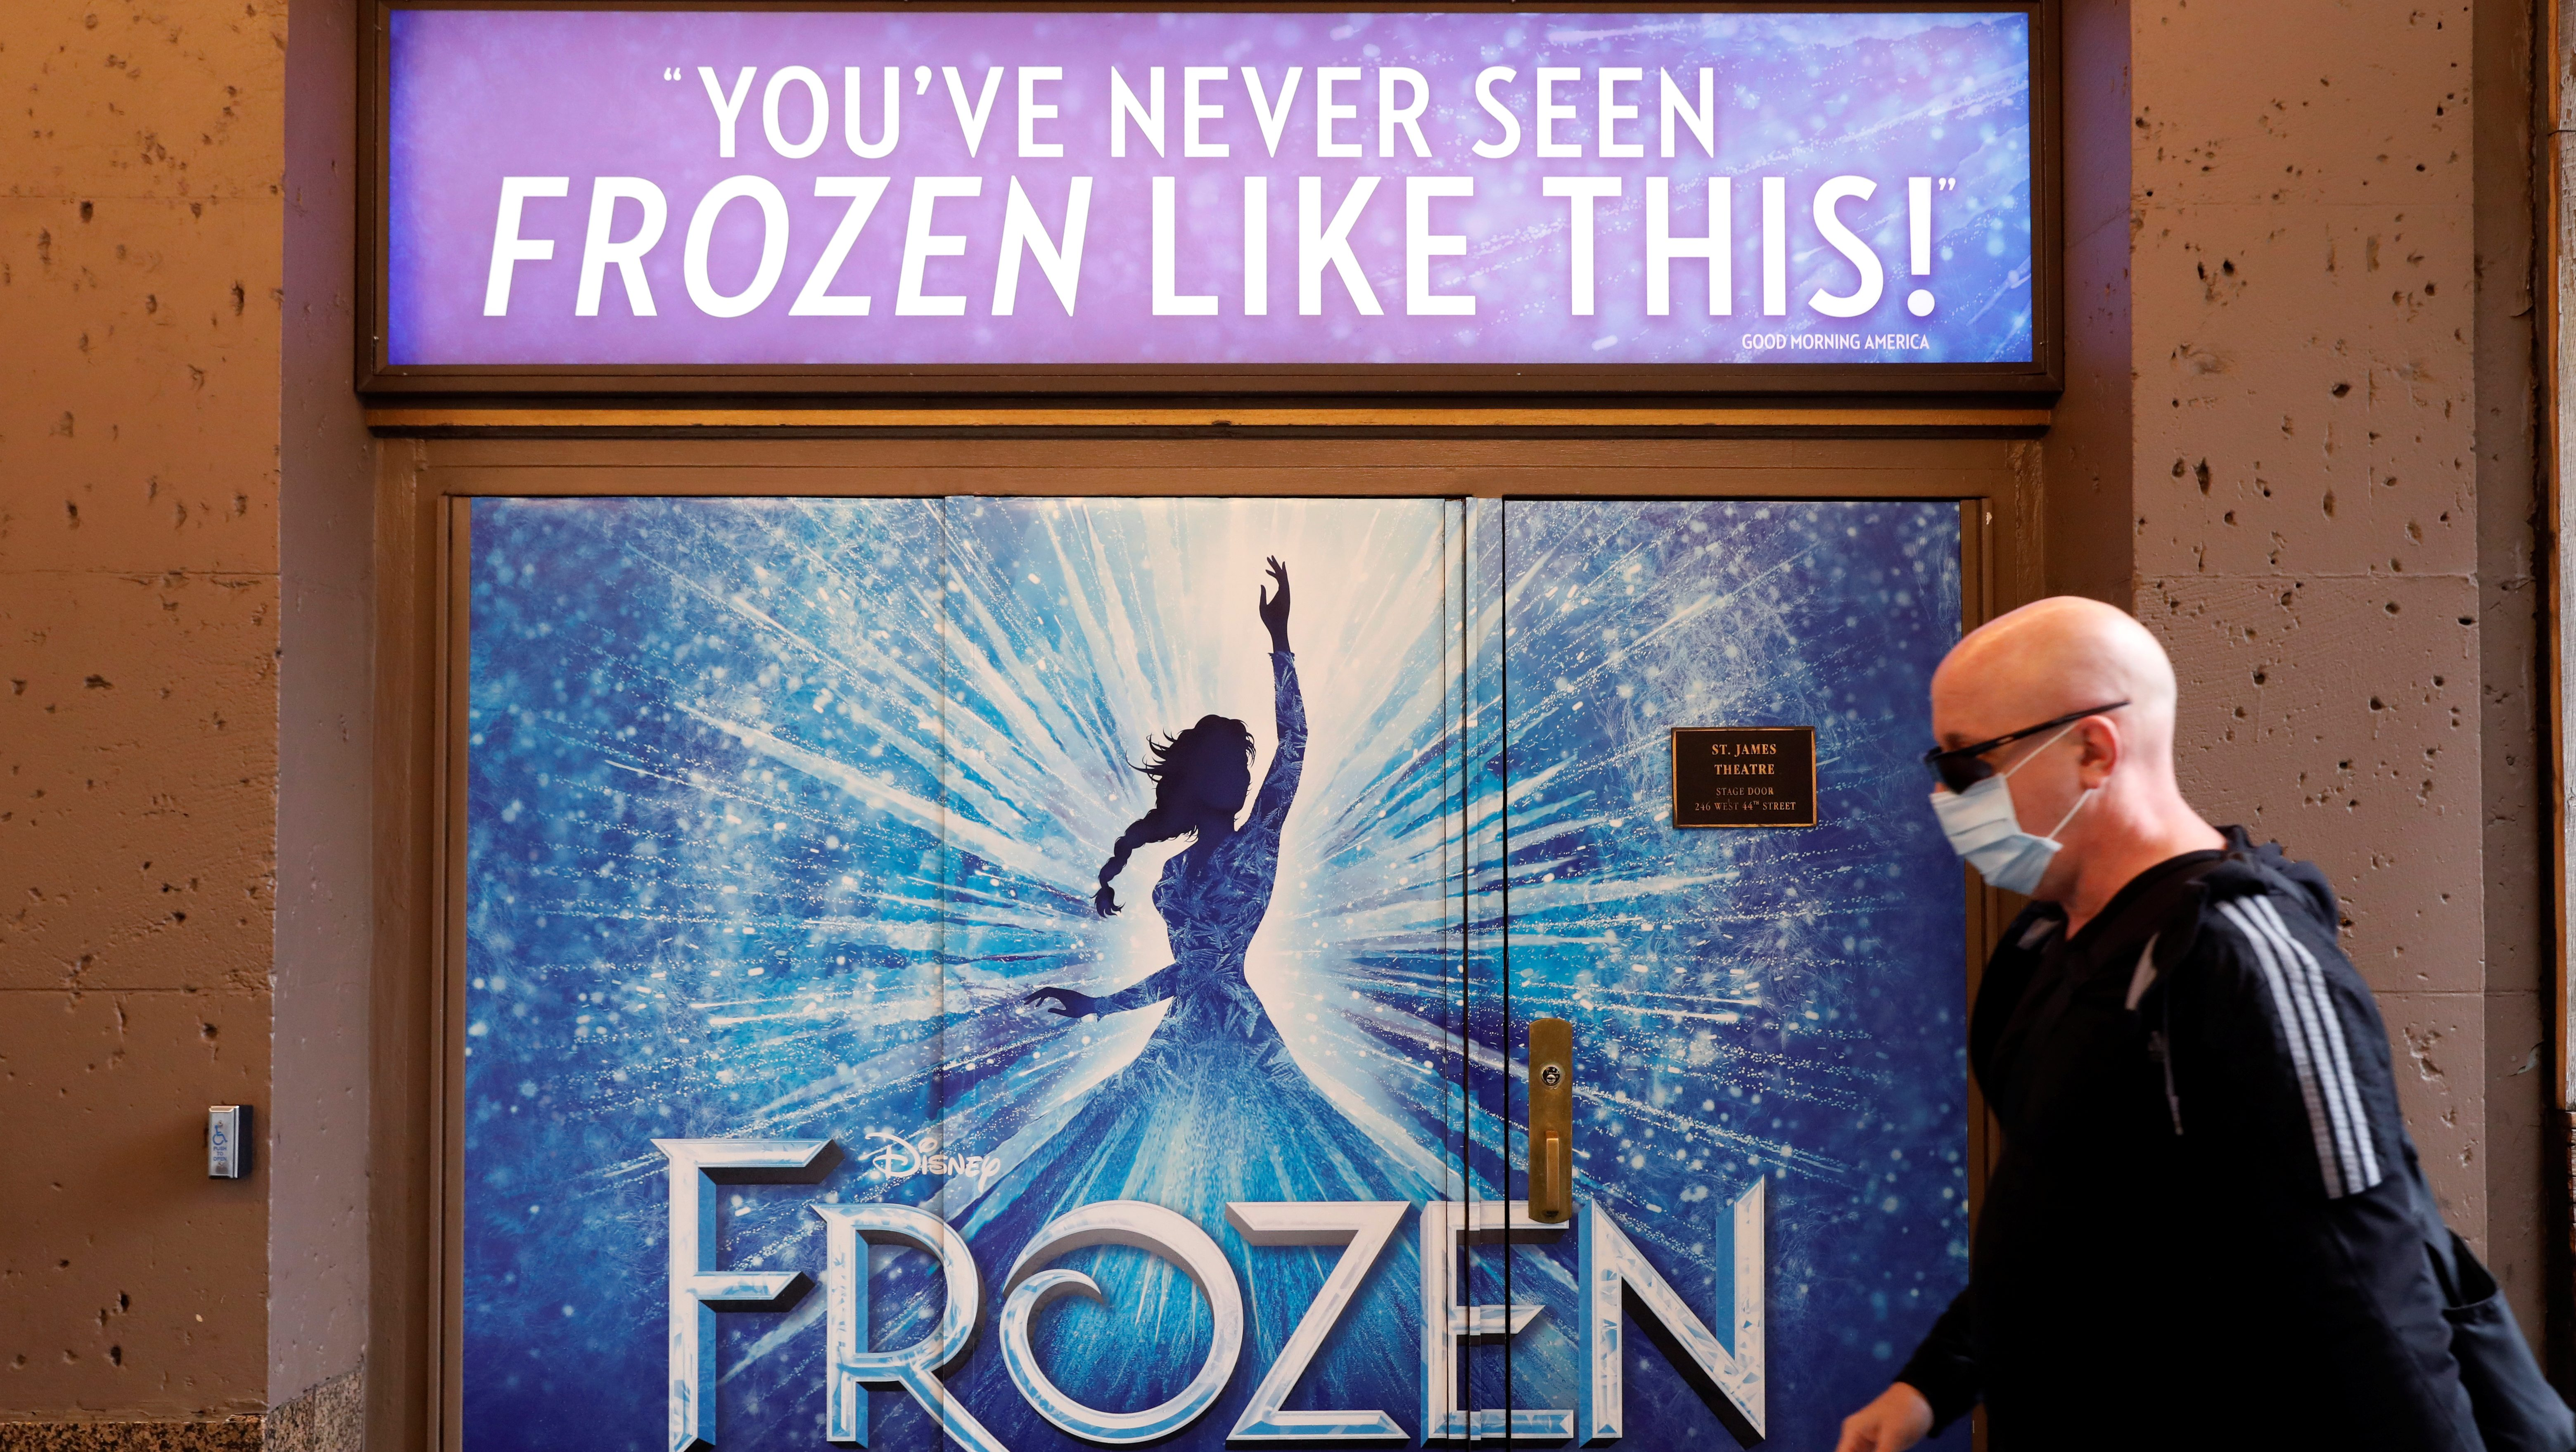 A person walks by the St. James Theatre where Disney's Broadway production of Frozen the Musical was being shown and has now been canceled due the outbreak of the coronavirus disease (COVID-19) in Manhattan, New York City, U.S., May 15, 2020.